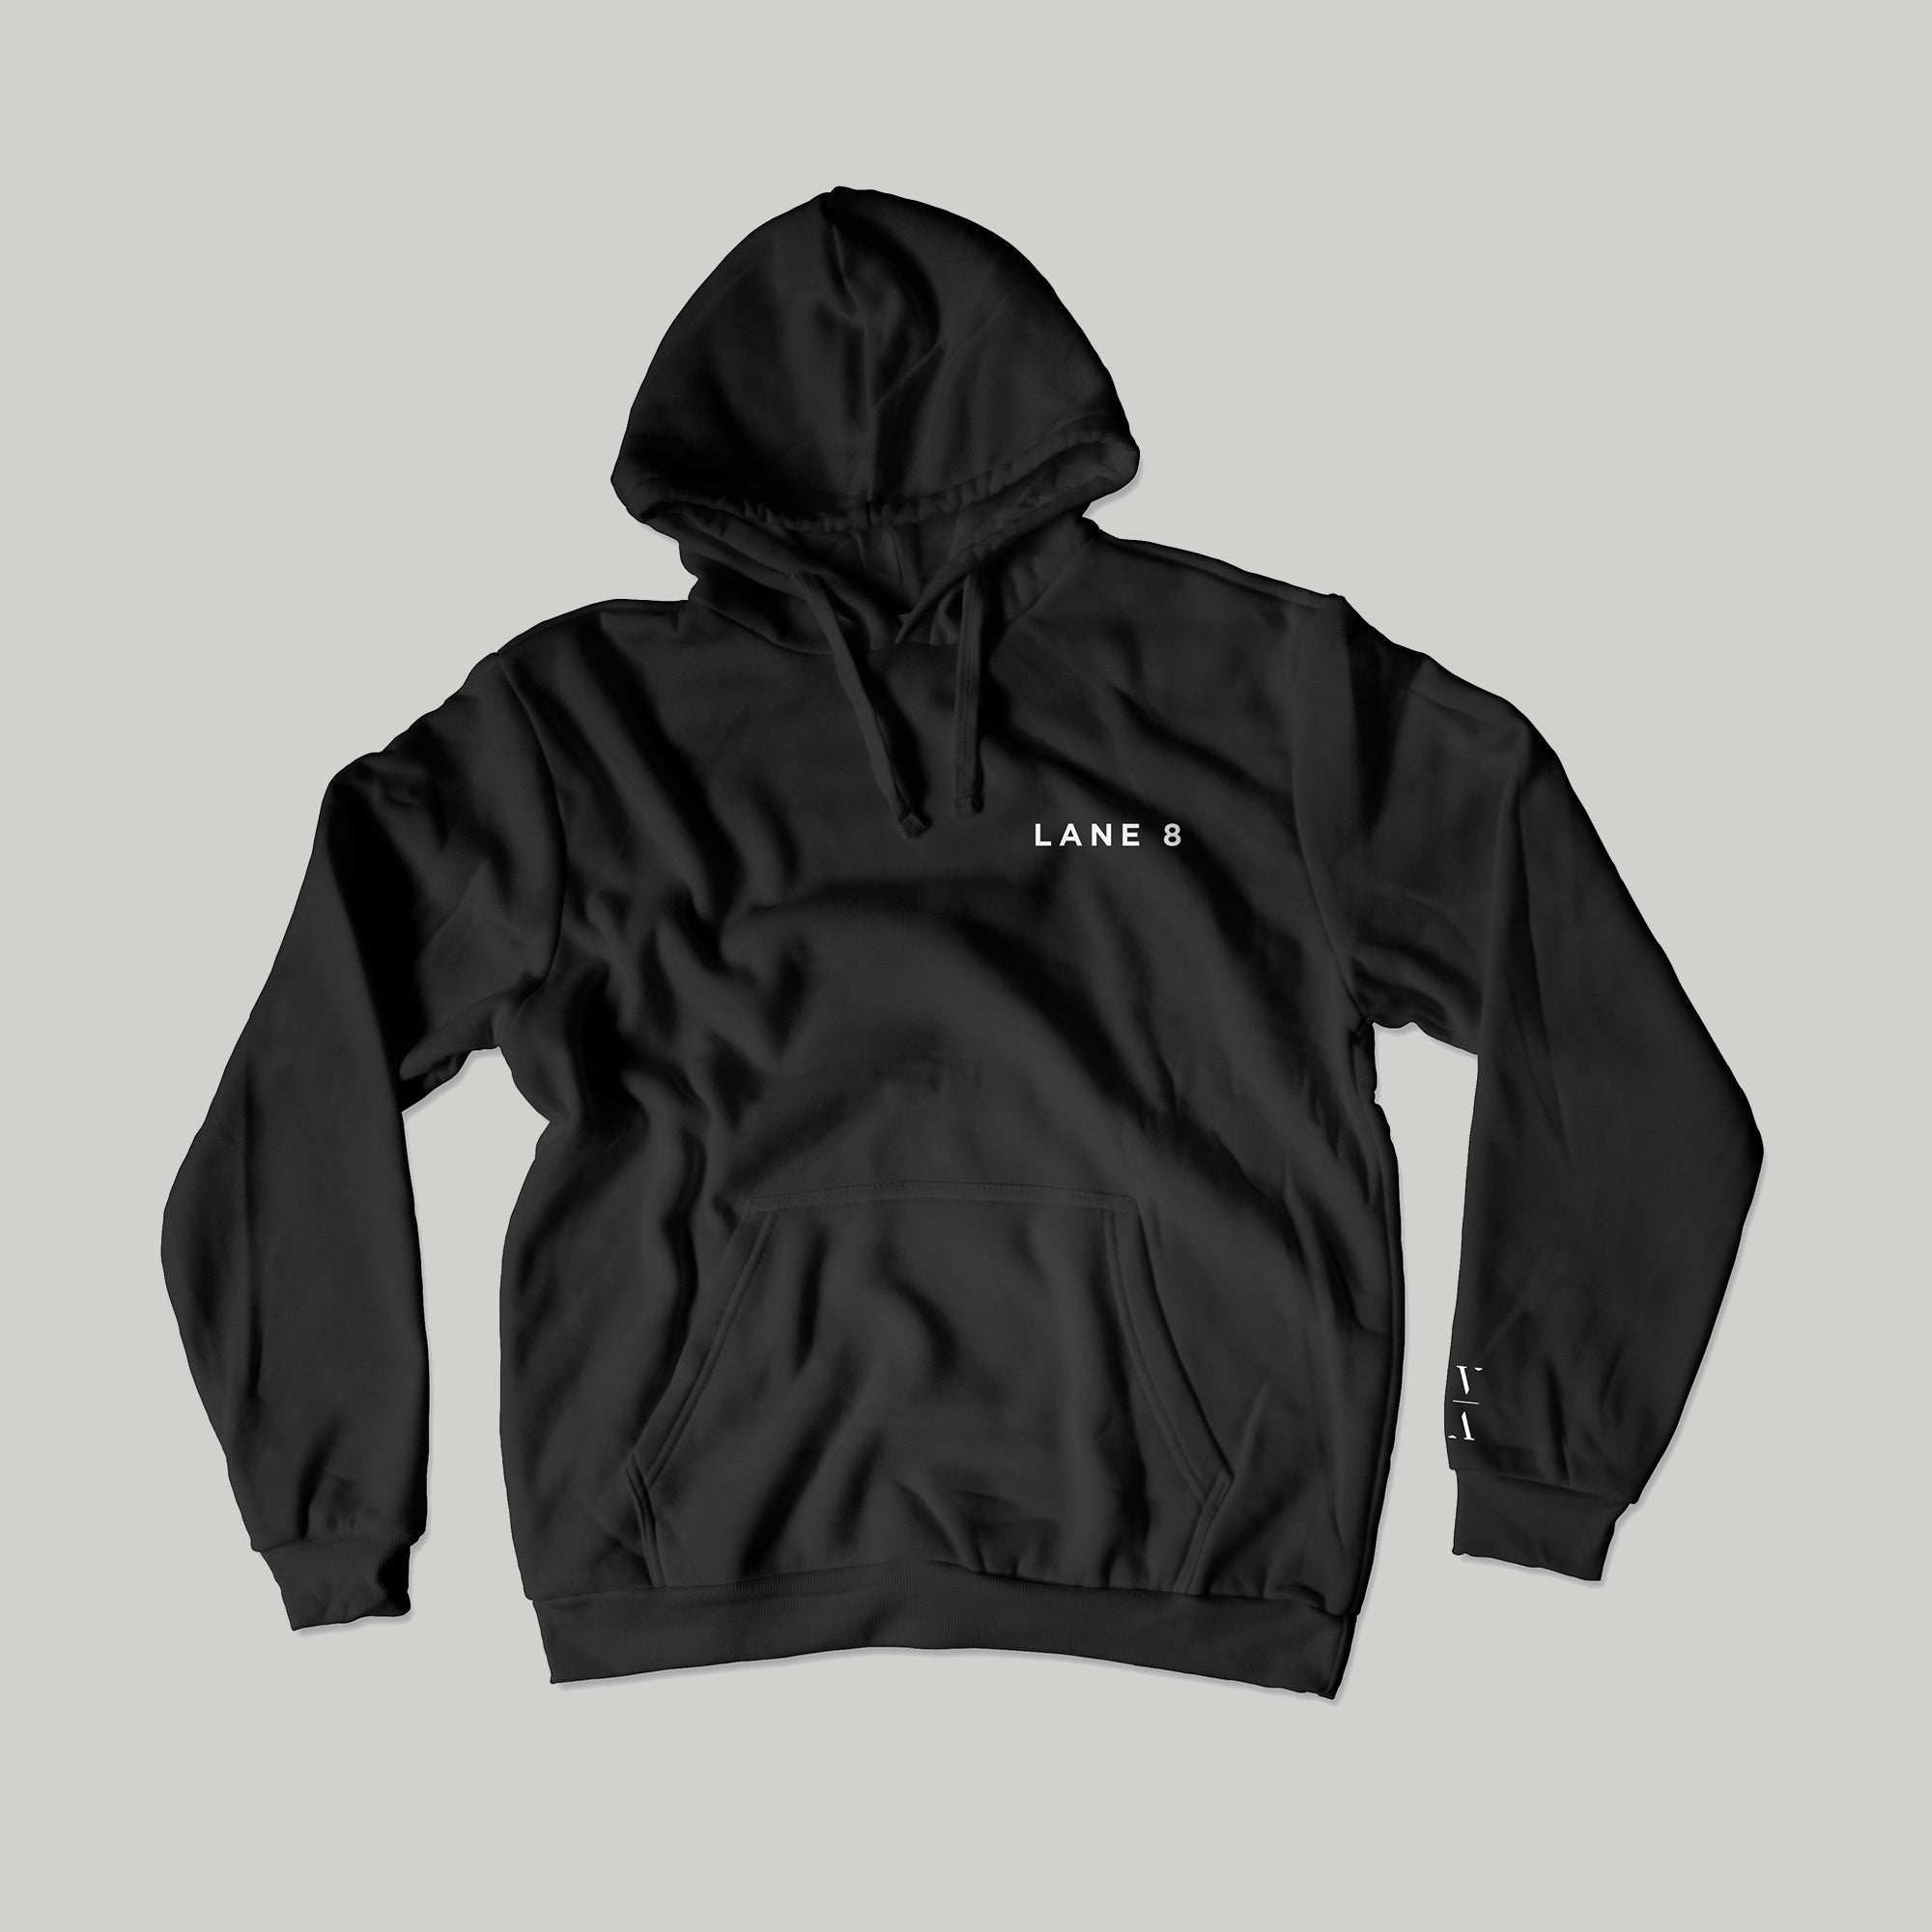 Lane 8 Embroidered Hoodie